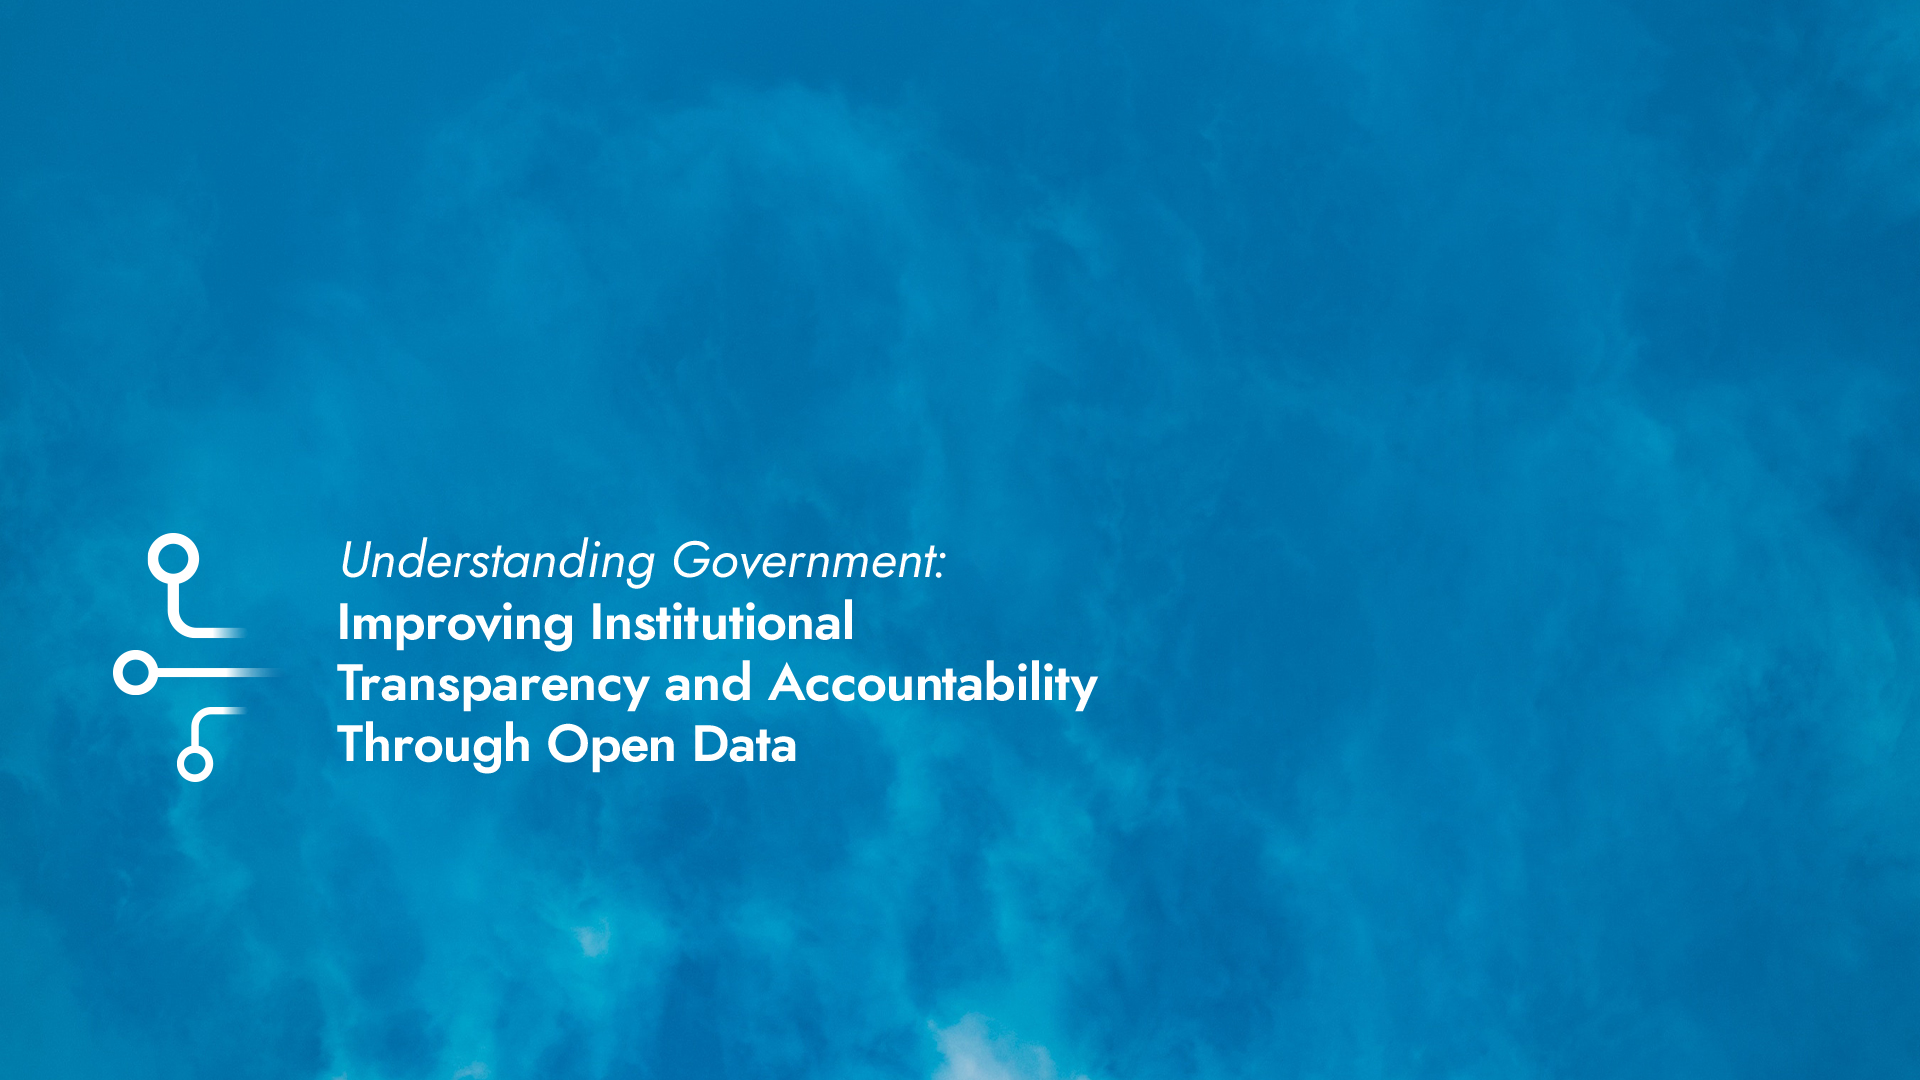 Handbook on Understanding Government: Improving Institutional Transparency and Accountability Through Open Data